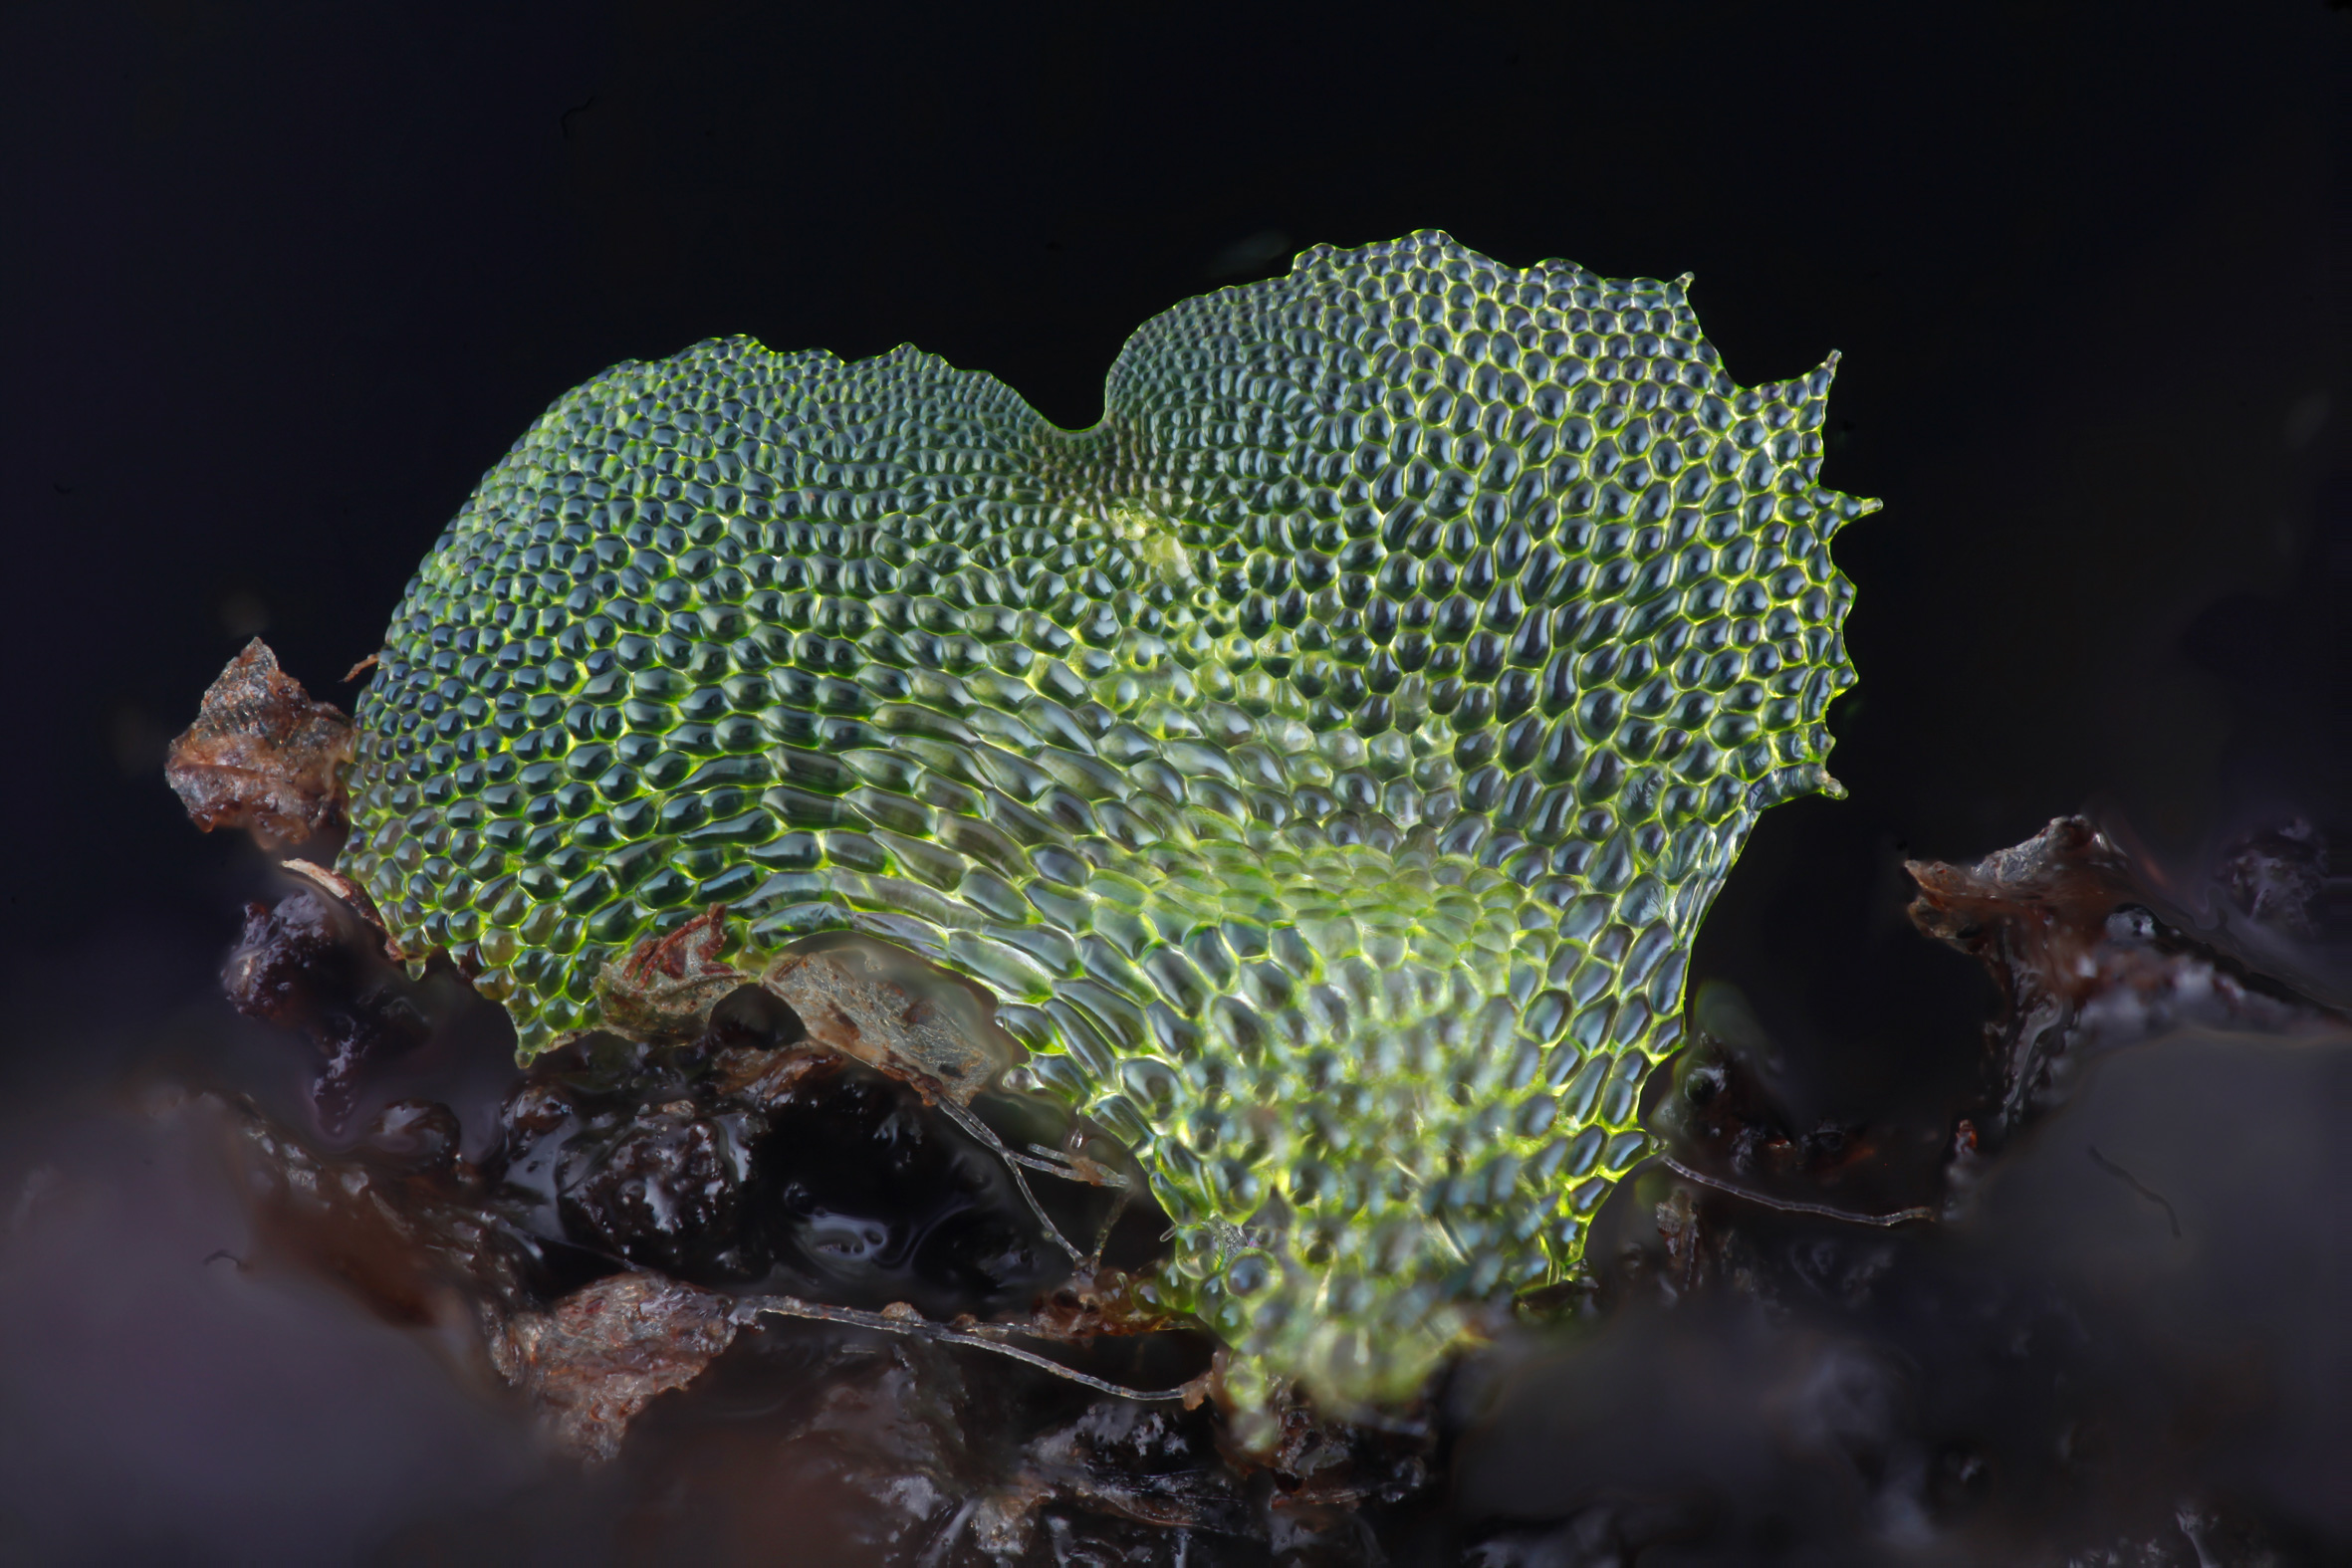 Fern gametophyte photographed by Dr Jennifer Deegan using her focus stacking photography platform. More information, images and project documentation can be found through  http://chlorophyllosophy.uk/